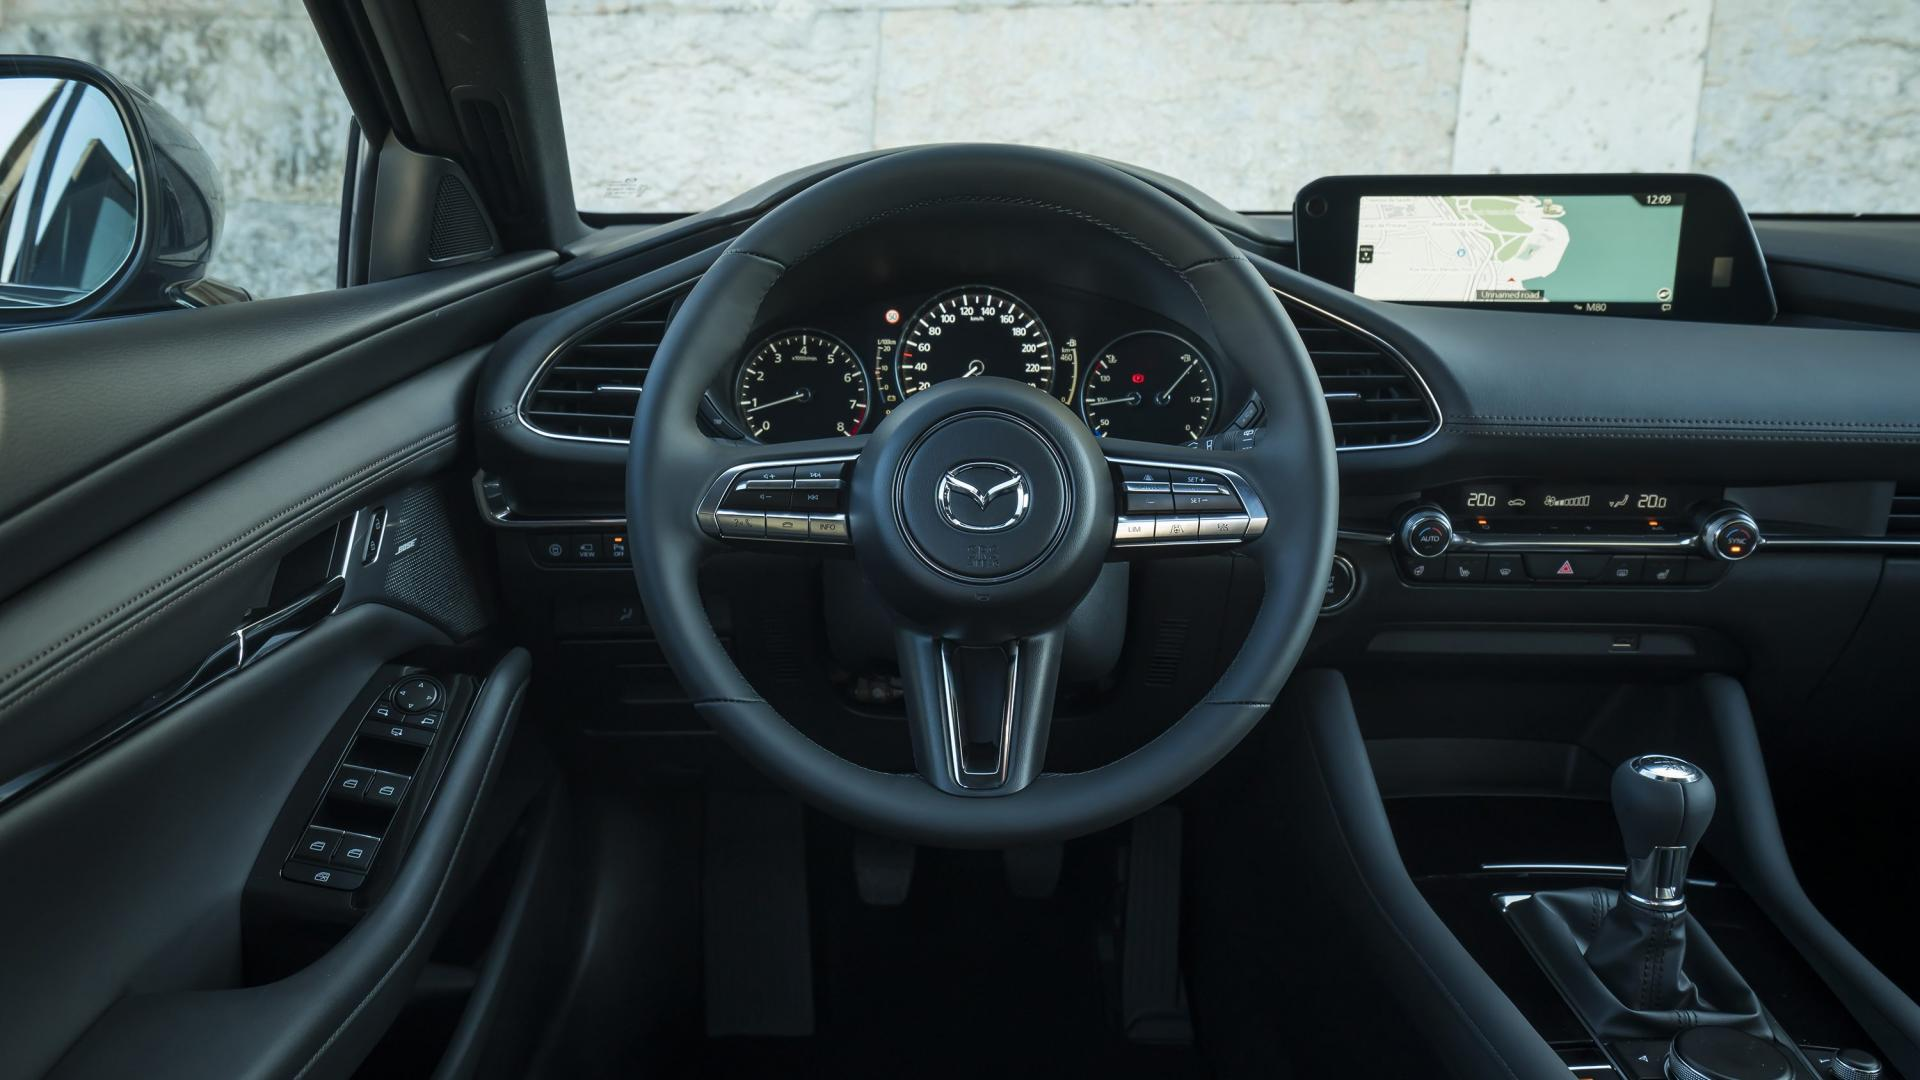 Mazda 3 2.0 SkyActiv-G 122 6MT Hatchback interieur dashboard